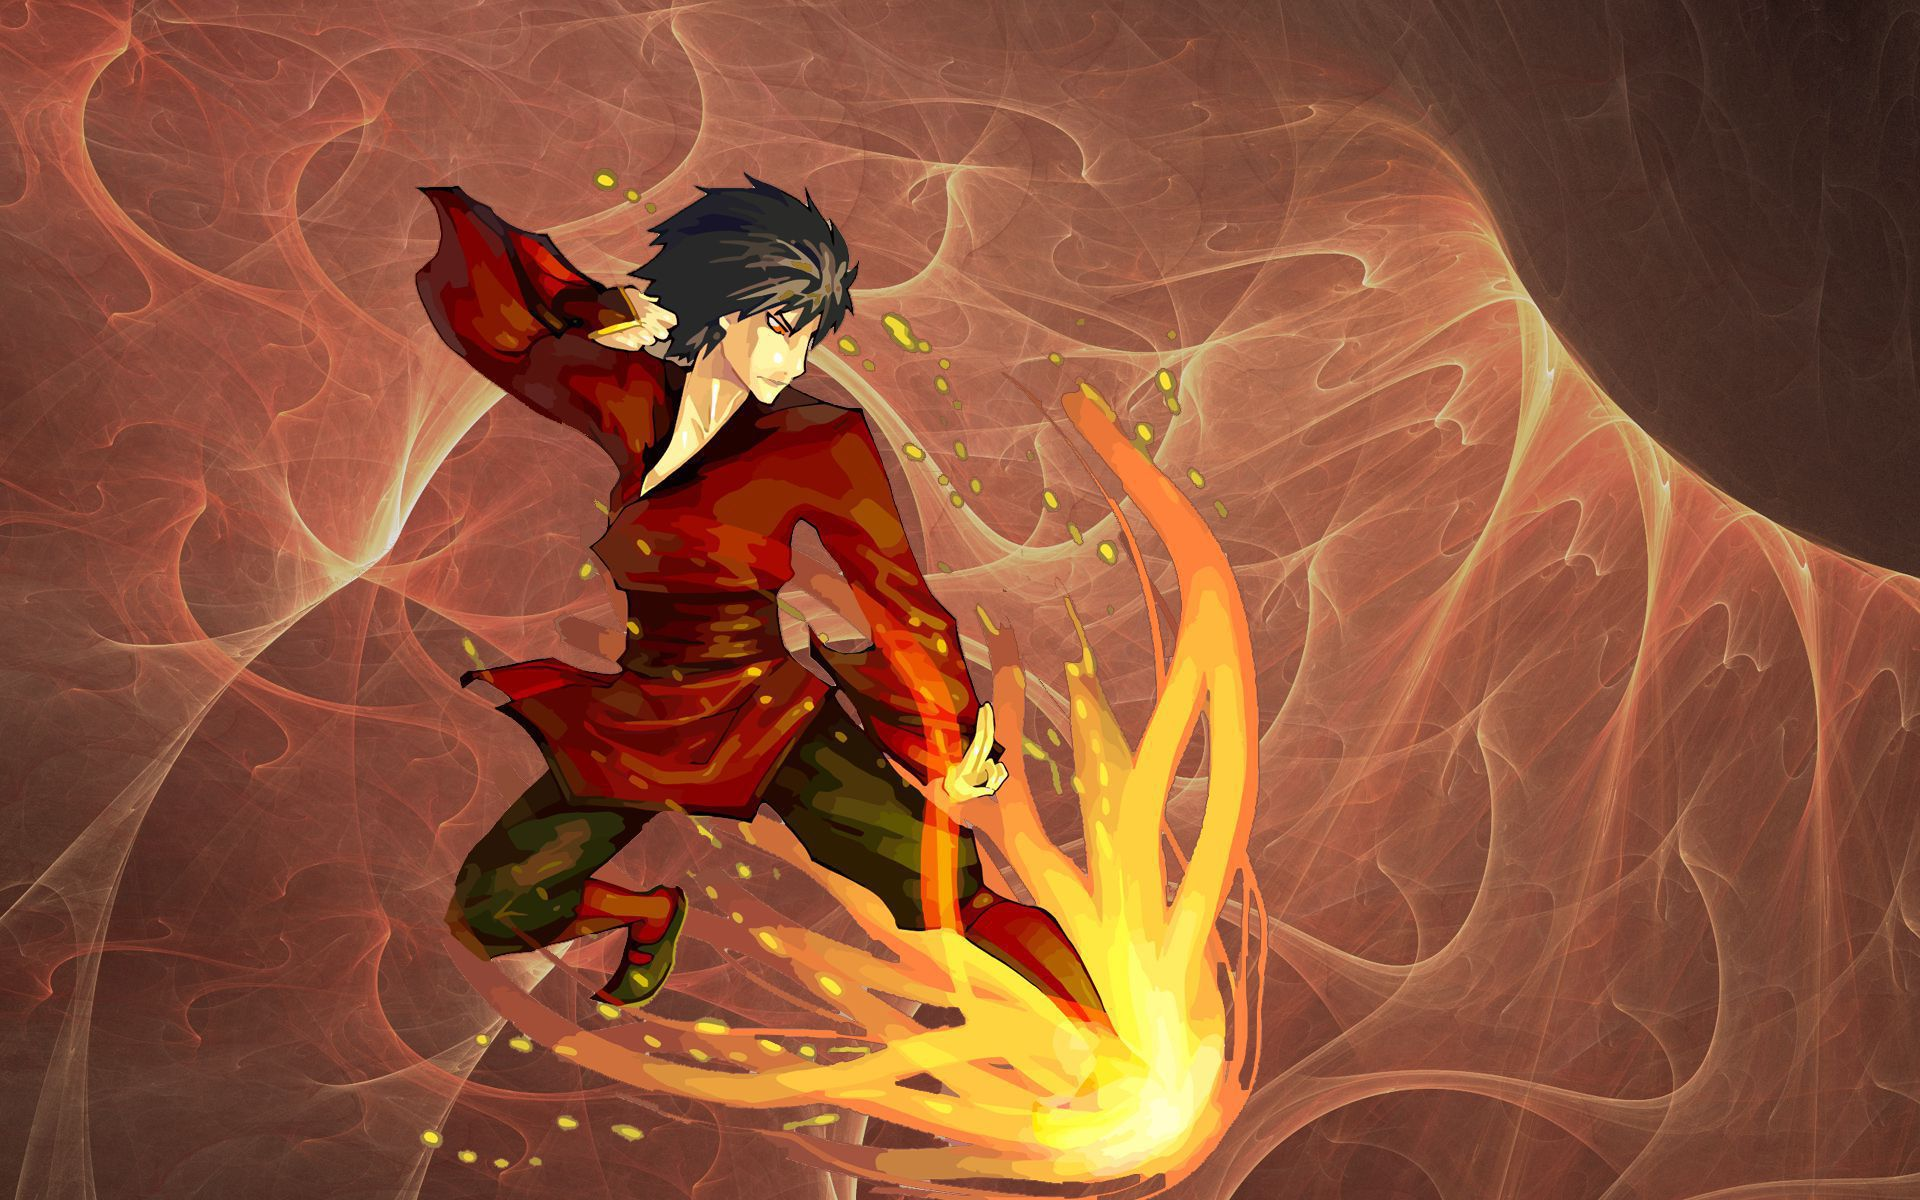 Avatar The Last Airbender Wallpapers Backgrounds